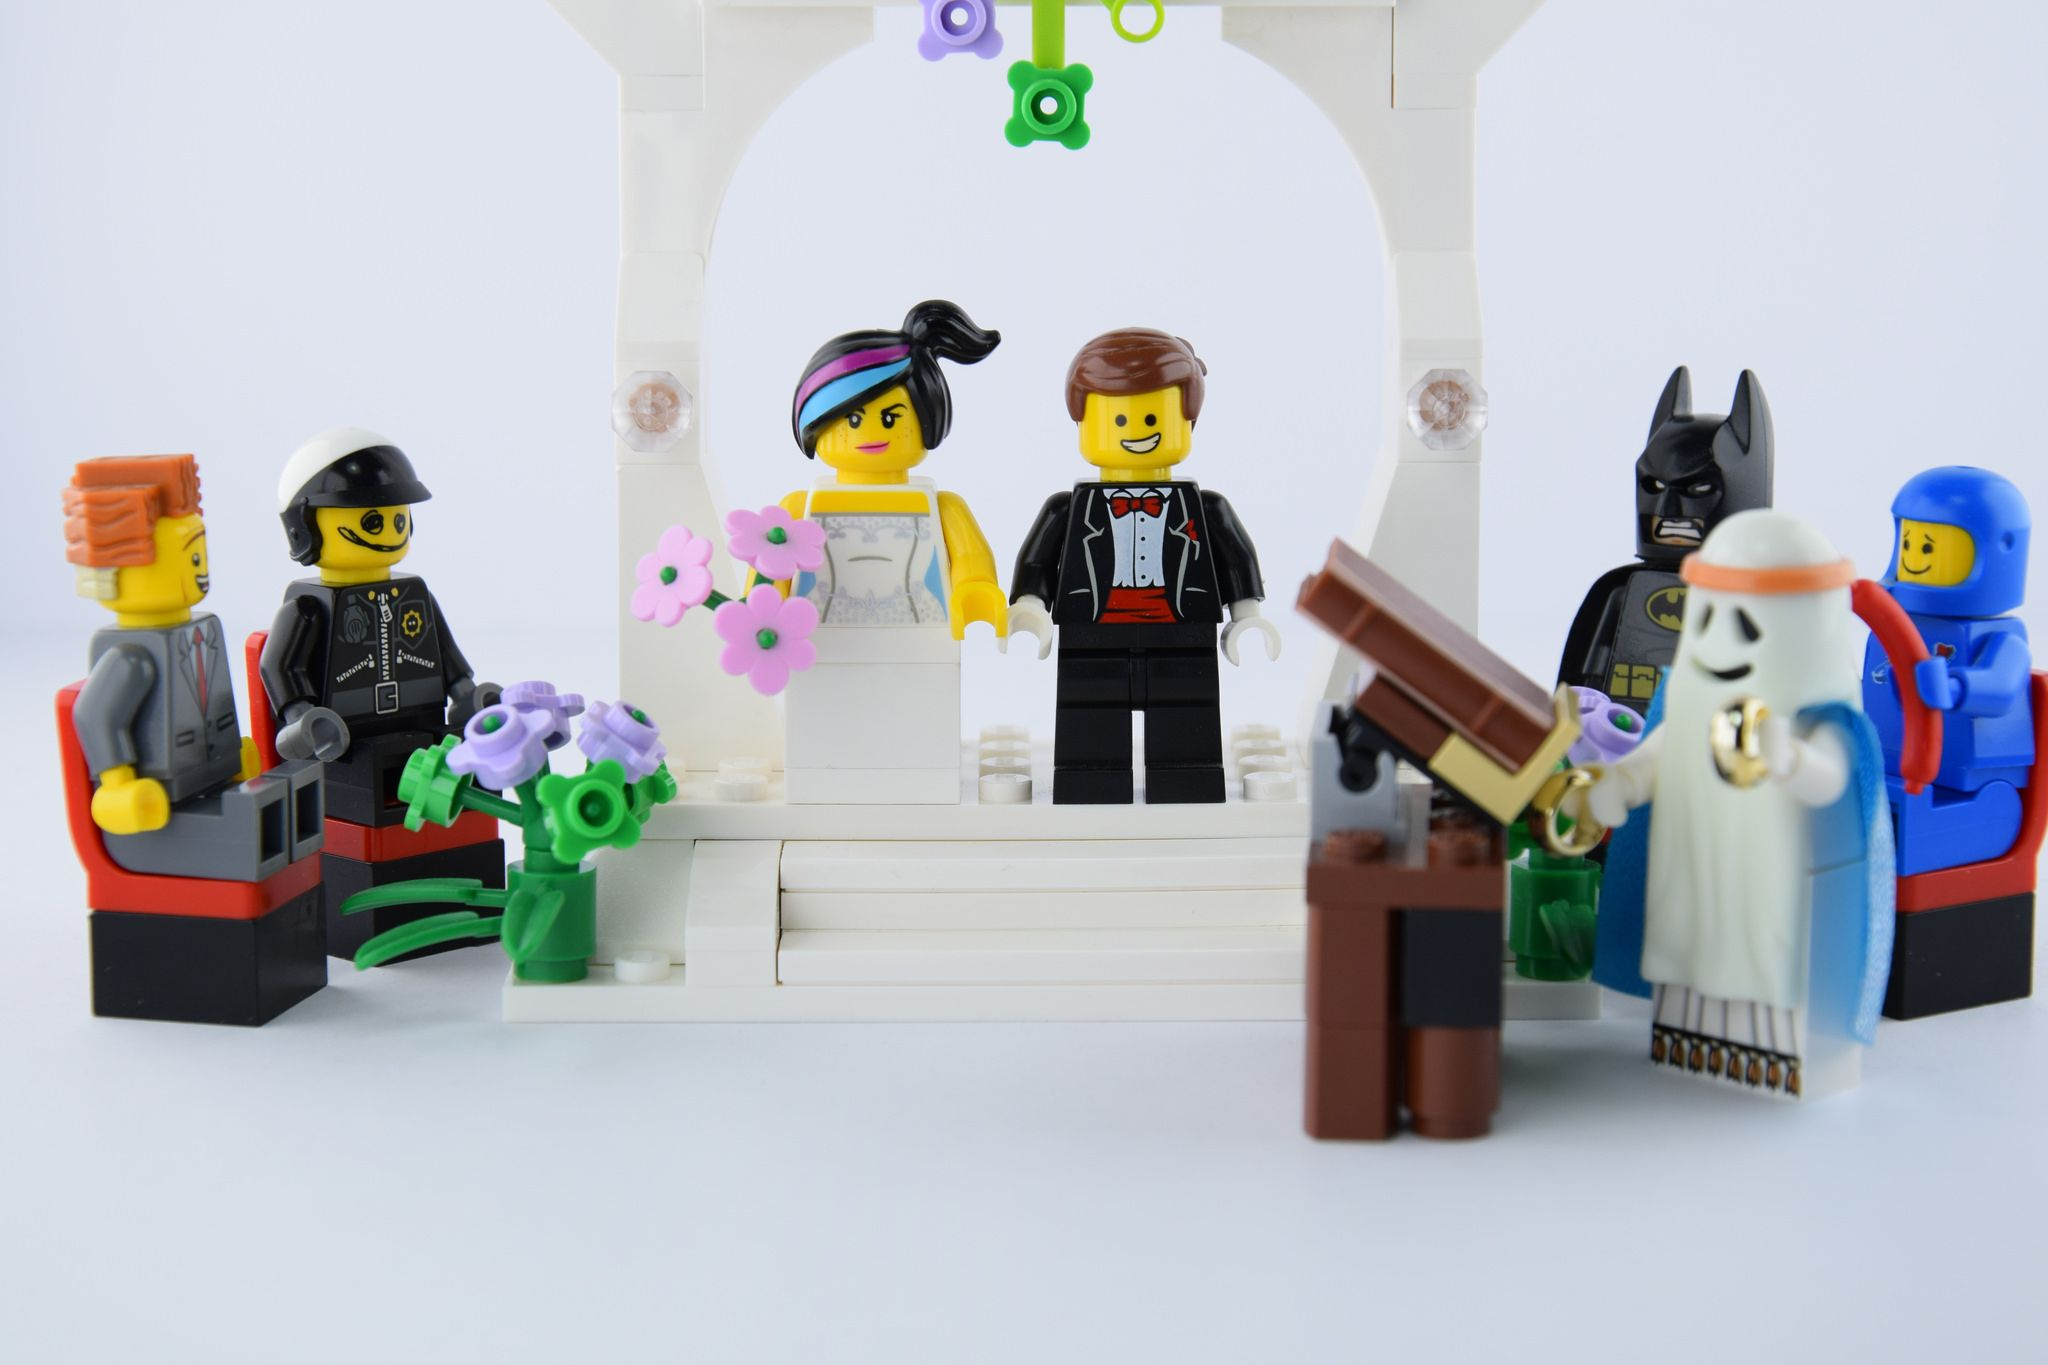 The Wedding Of Emmet And Cool Tag Lego Pictures Lego Movie Characters Lego Movie